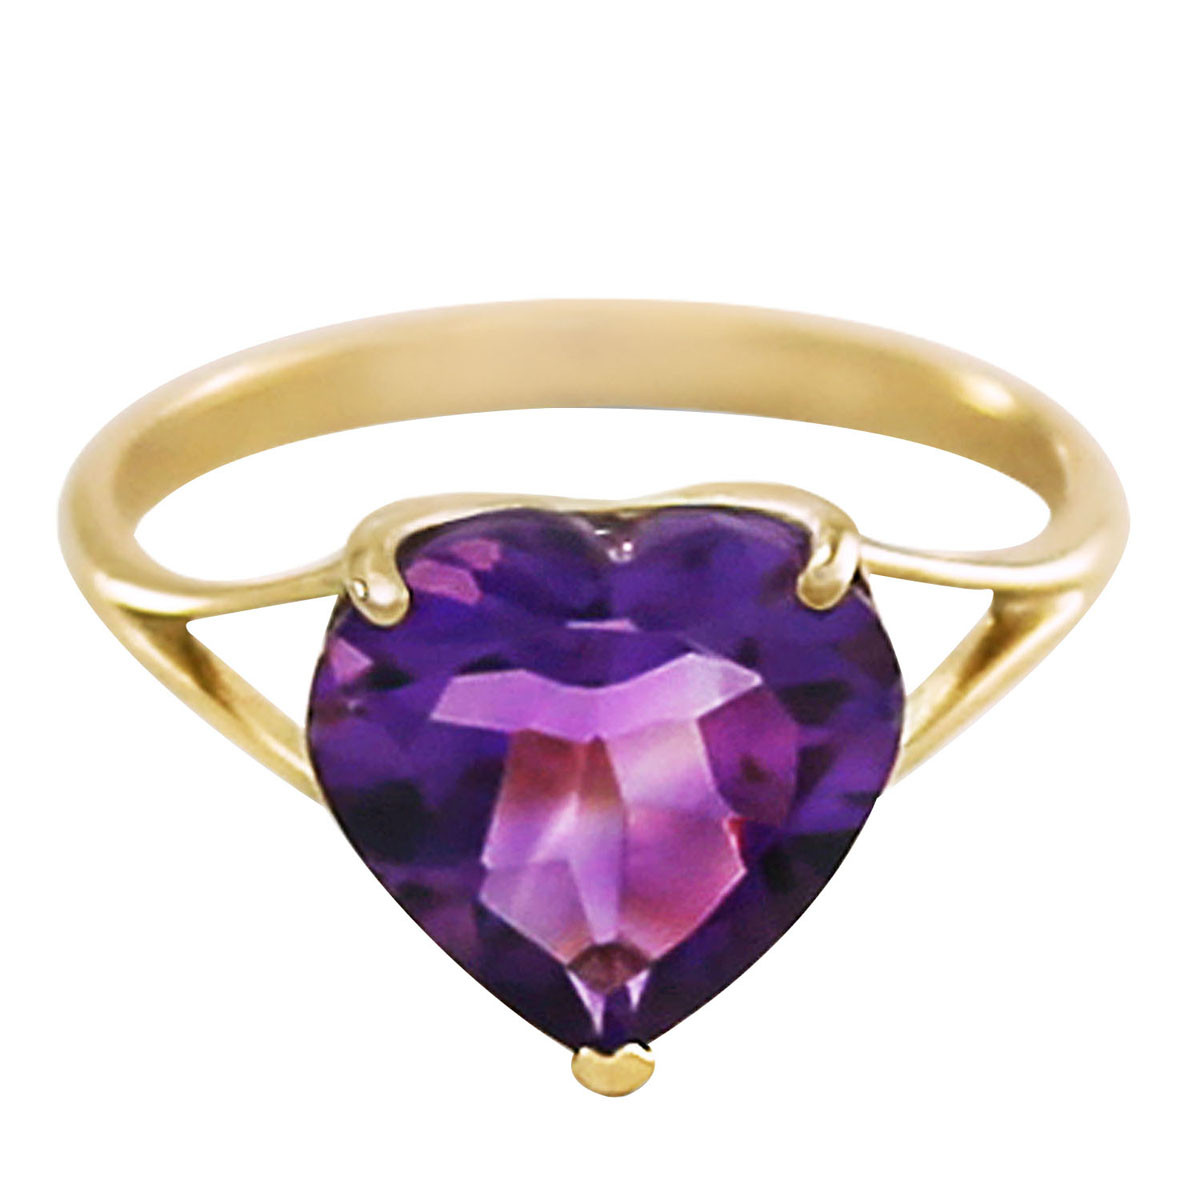 Amethyst Large Heart Ring 3.1 ct in 9ct Gold